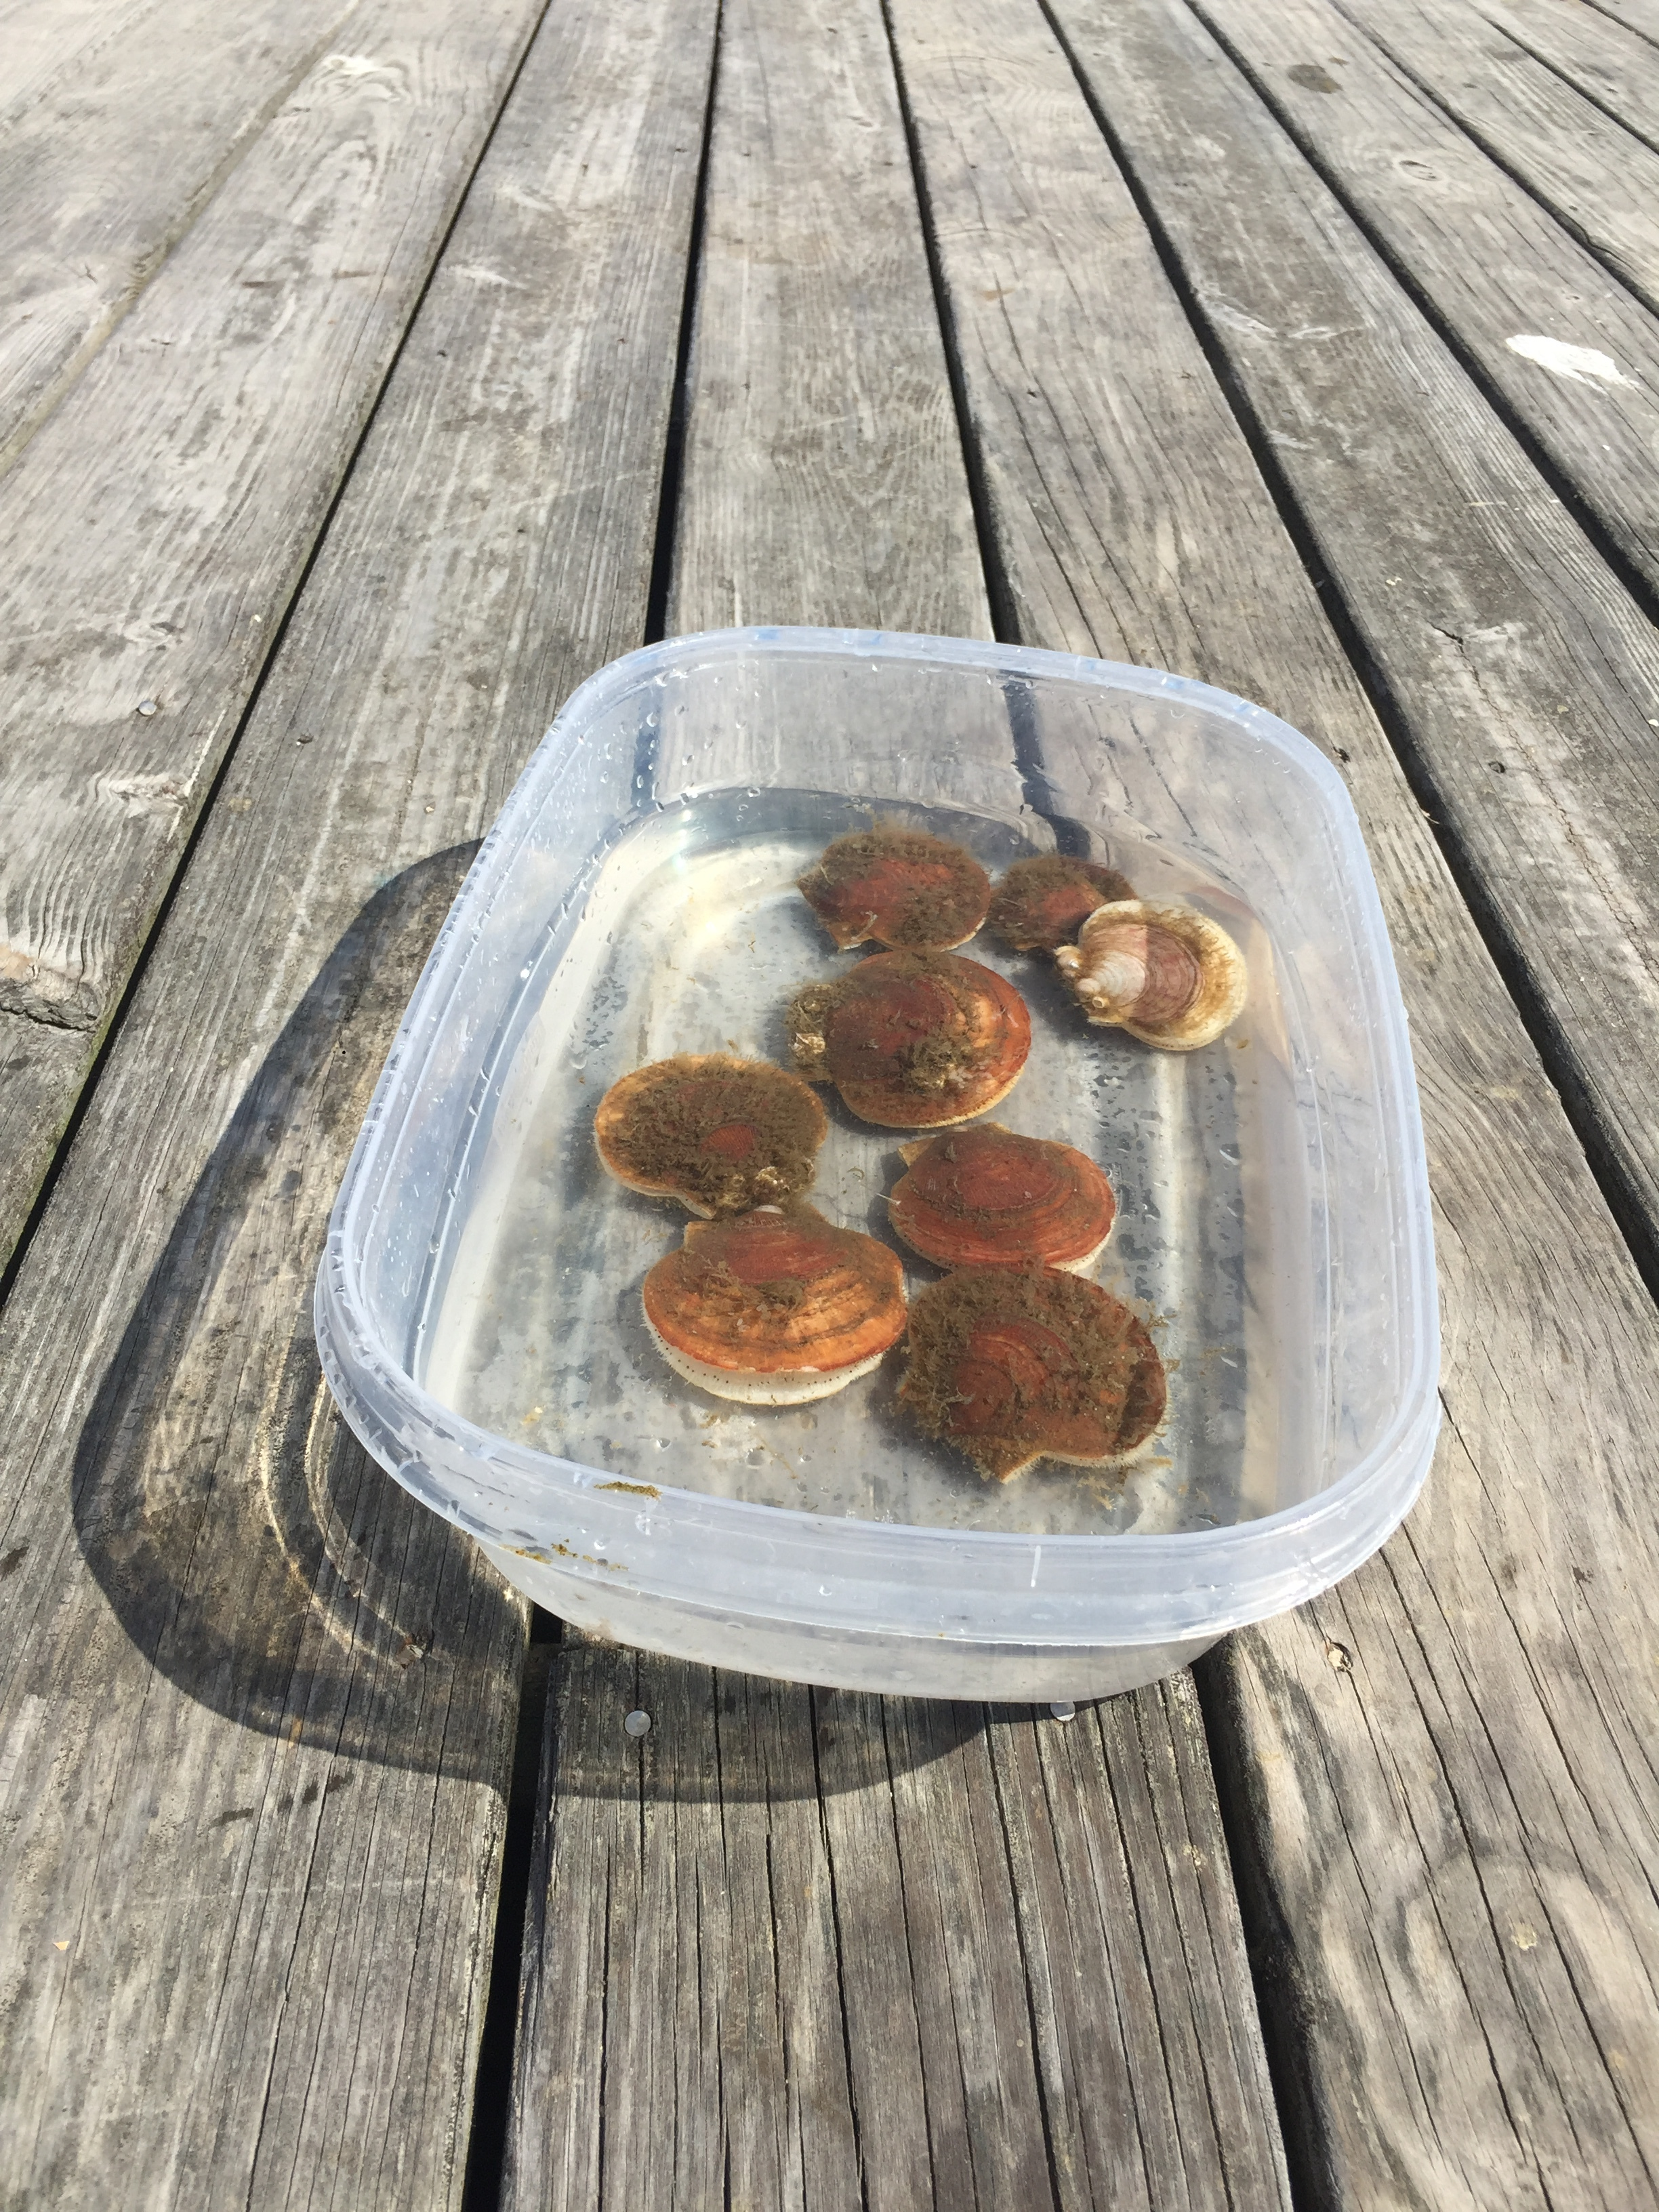 A bunch of scallop friends spending some quality time away from their lantern net home.